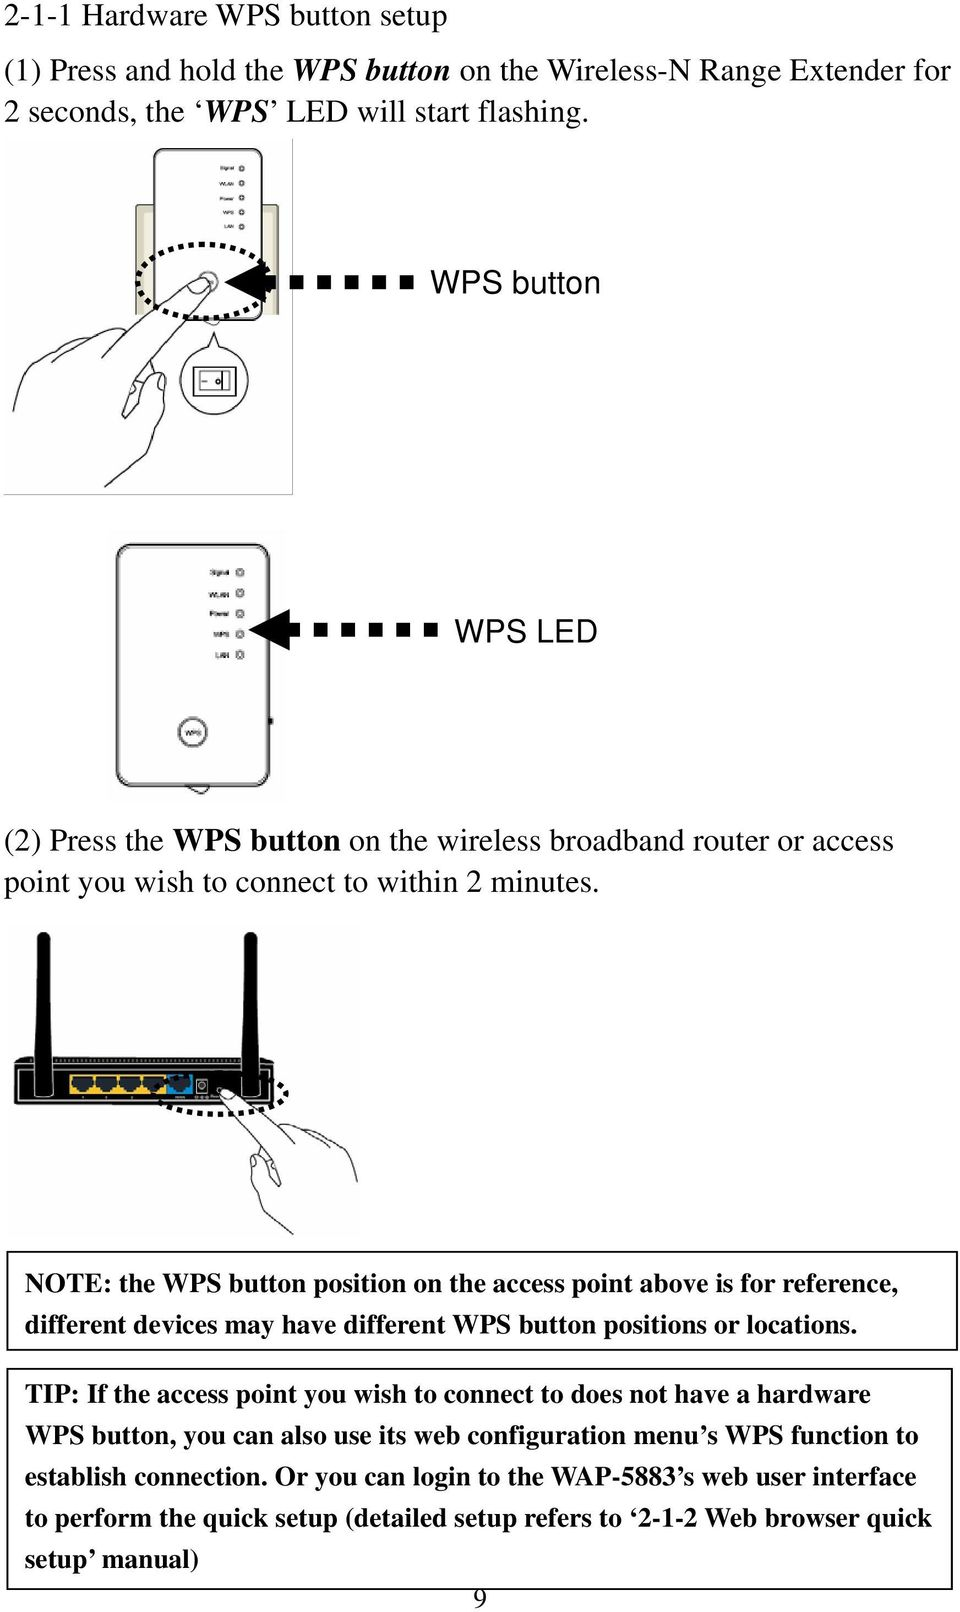 NOTE: the WPS button position on the access point above is for reference, different devices may have different WPS button positions or locations.